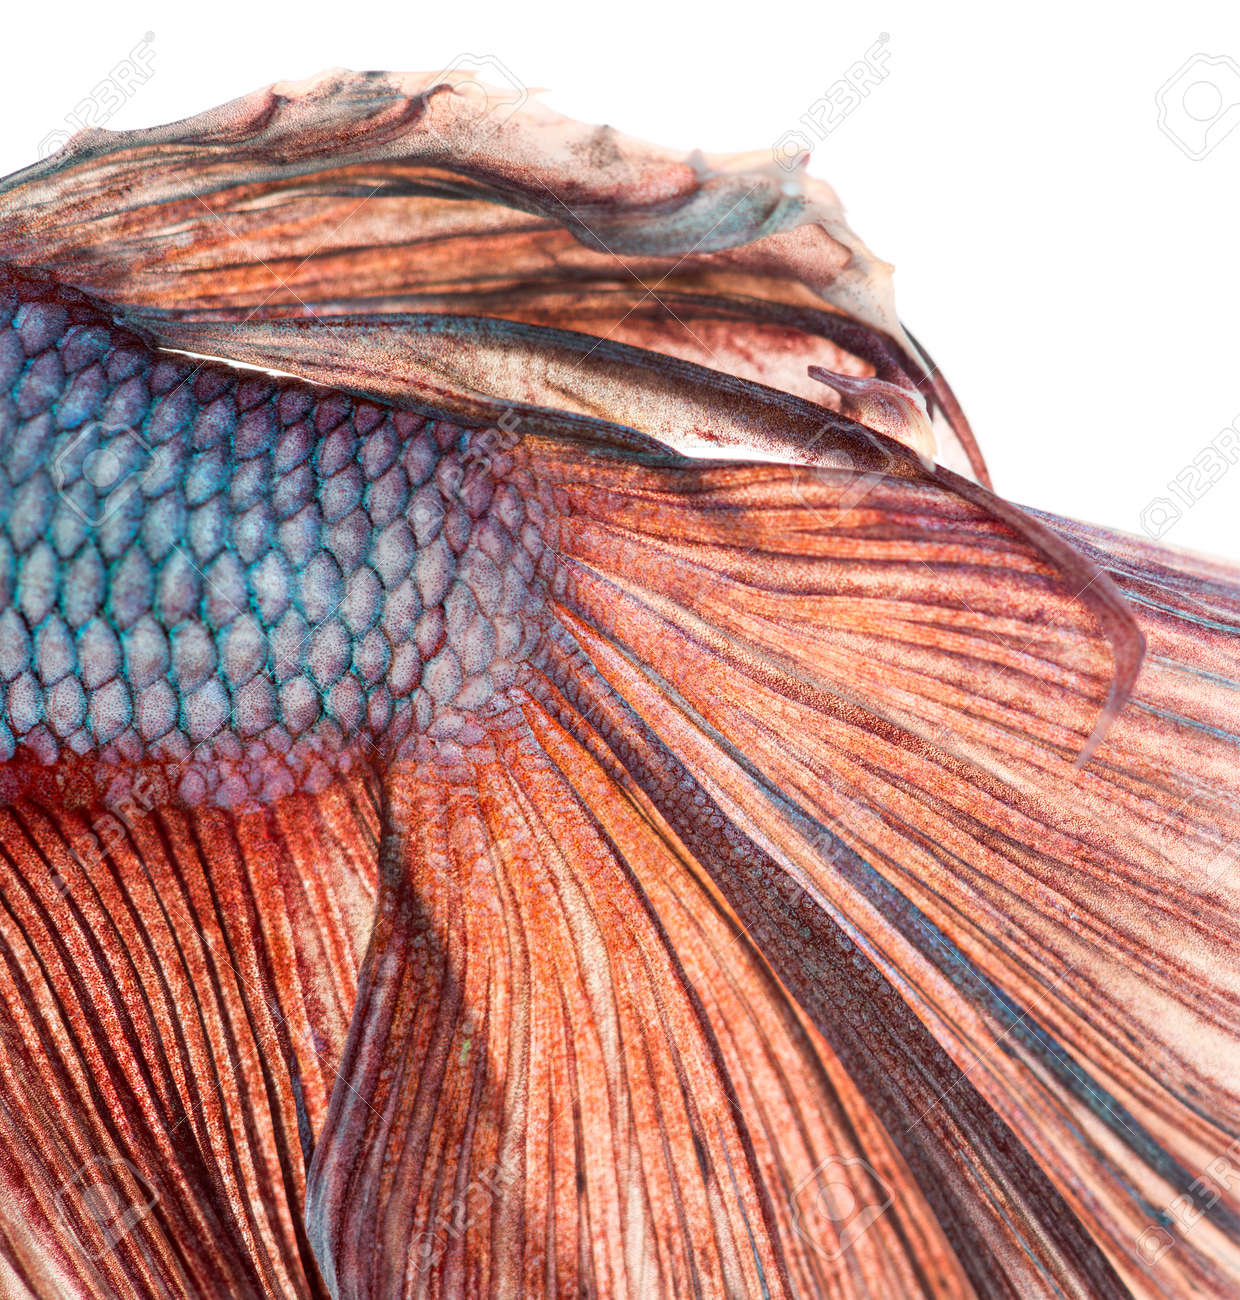 Close-up of a Siamese fighting fish's caudal fin, Betta splendens, isolated on white Stock Photo - 25983396